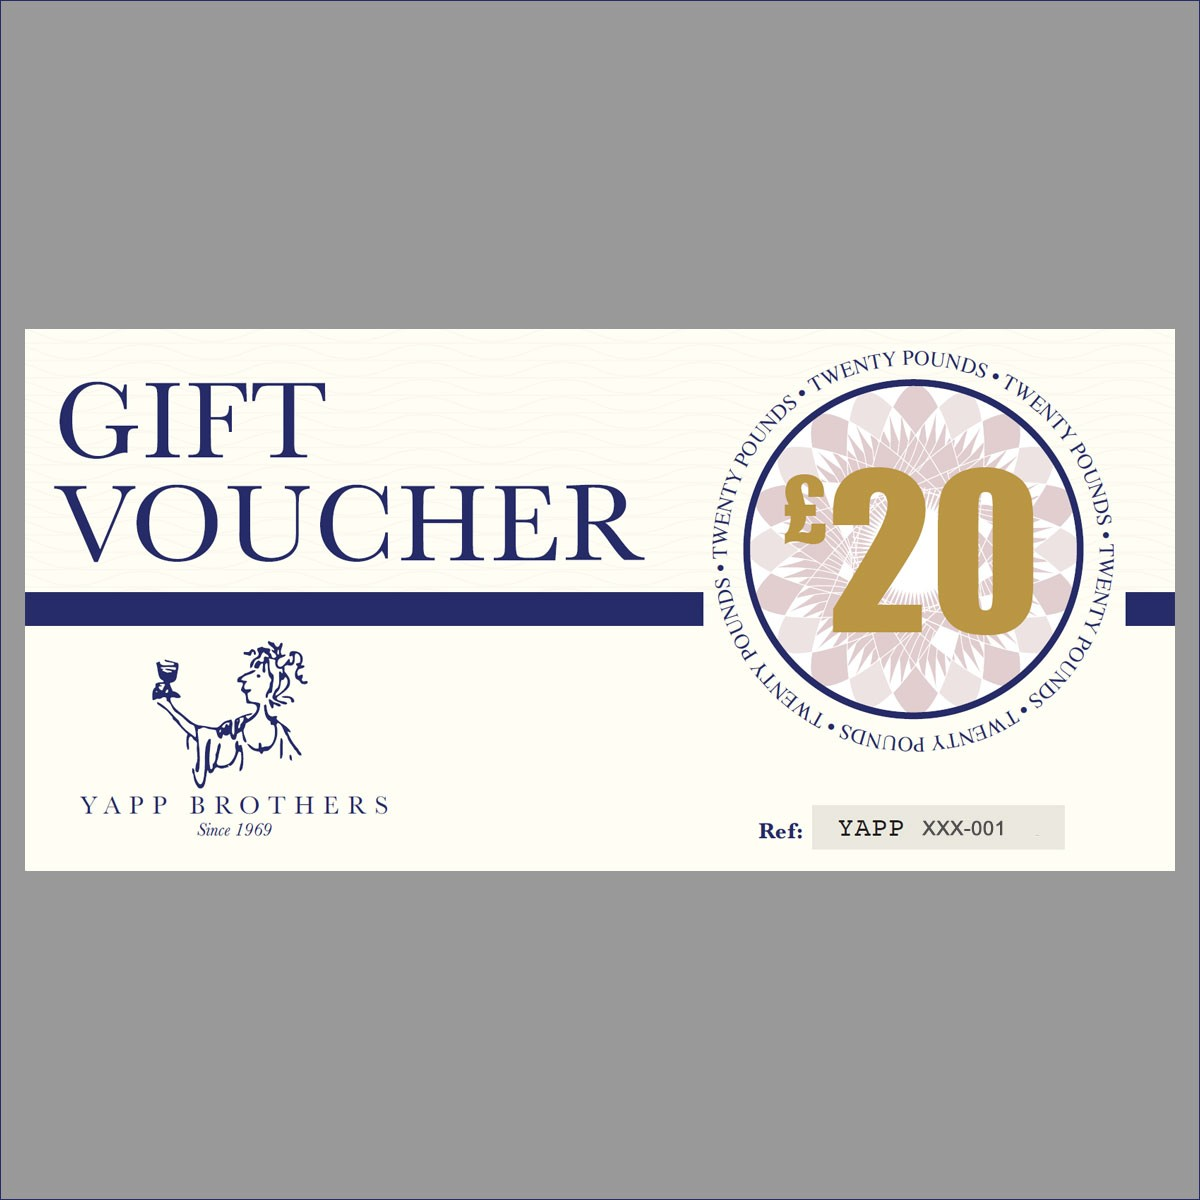 Yapp Brothers £20 Gift Voucher